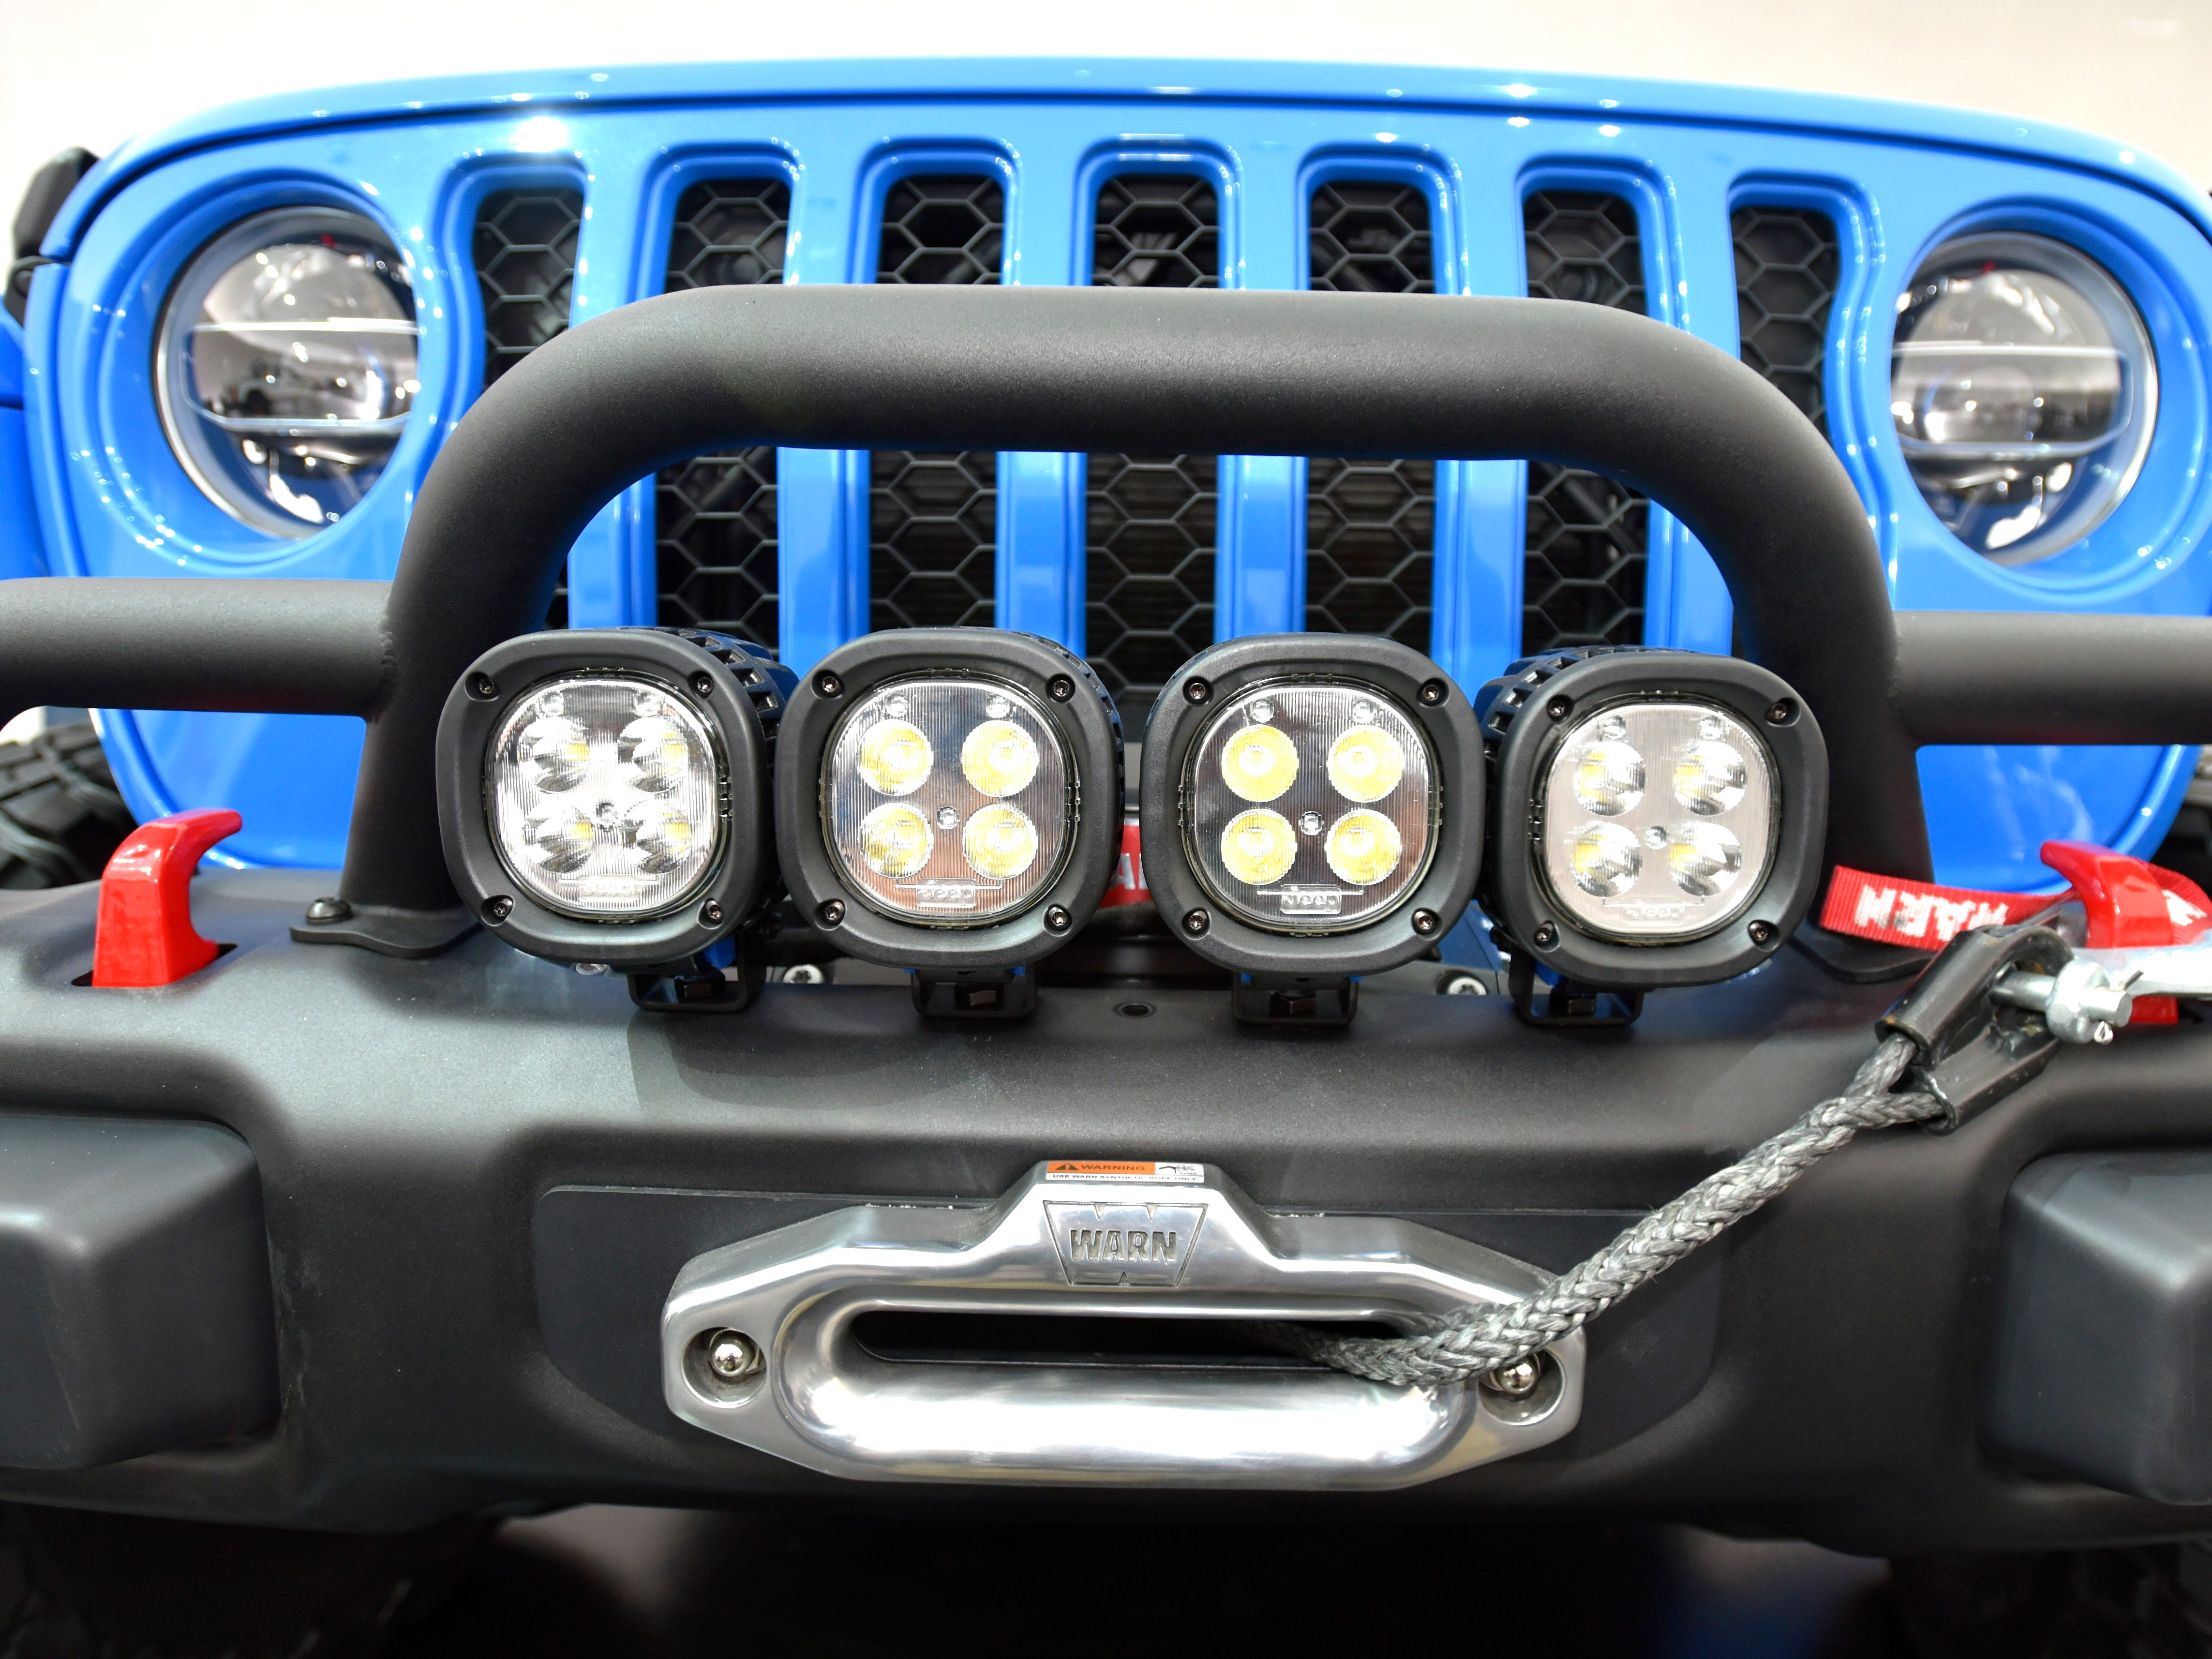 These are four, five-inch LED off-road lights on top of the front bumper, which also houses a winch on the Jeep J6 concept in Metallic Brilliant Blue.